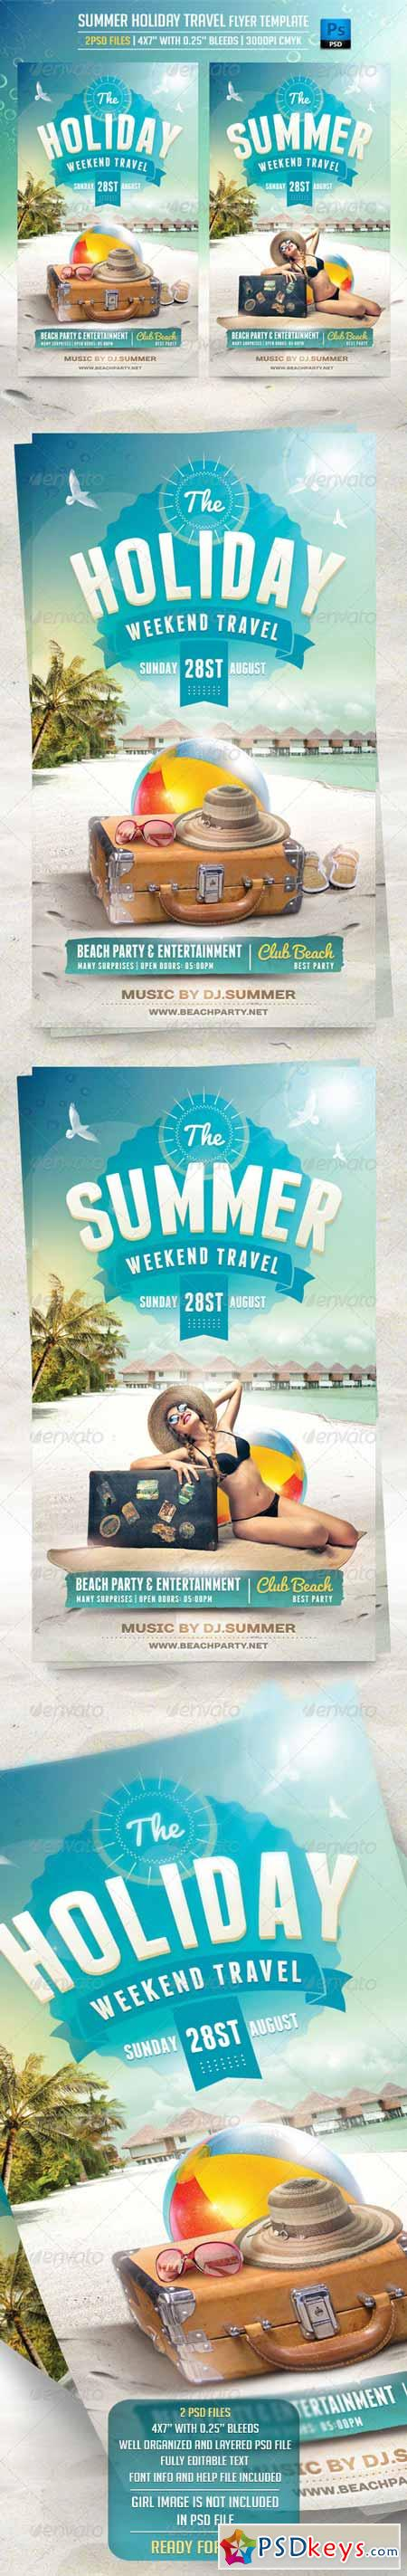 summer holiday travel flyer template  summer holiday travel flyer template 8269462